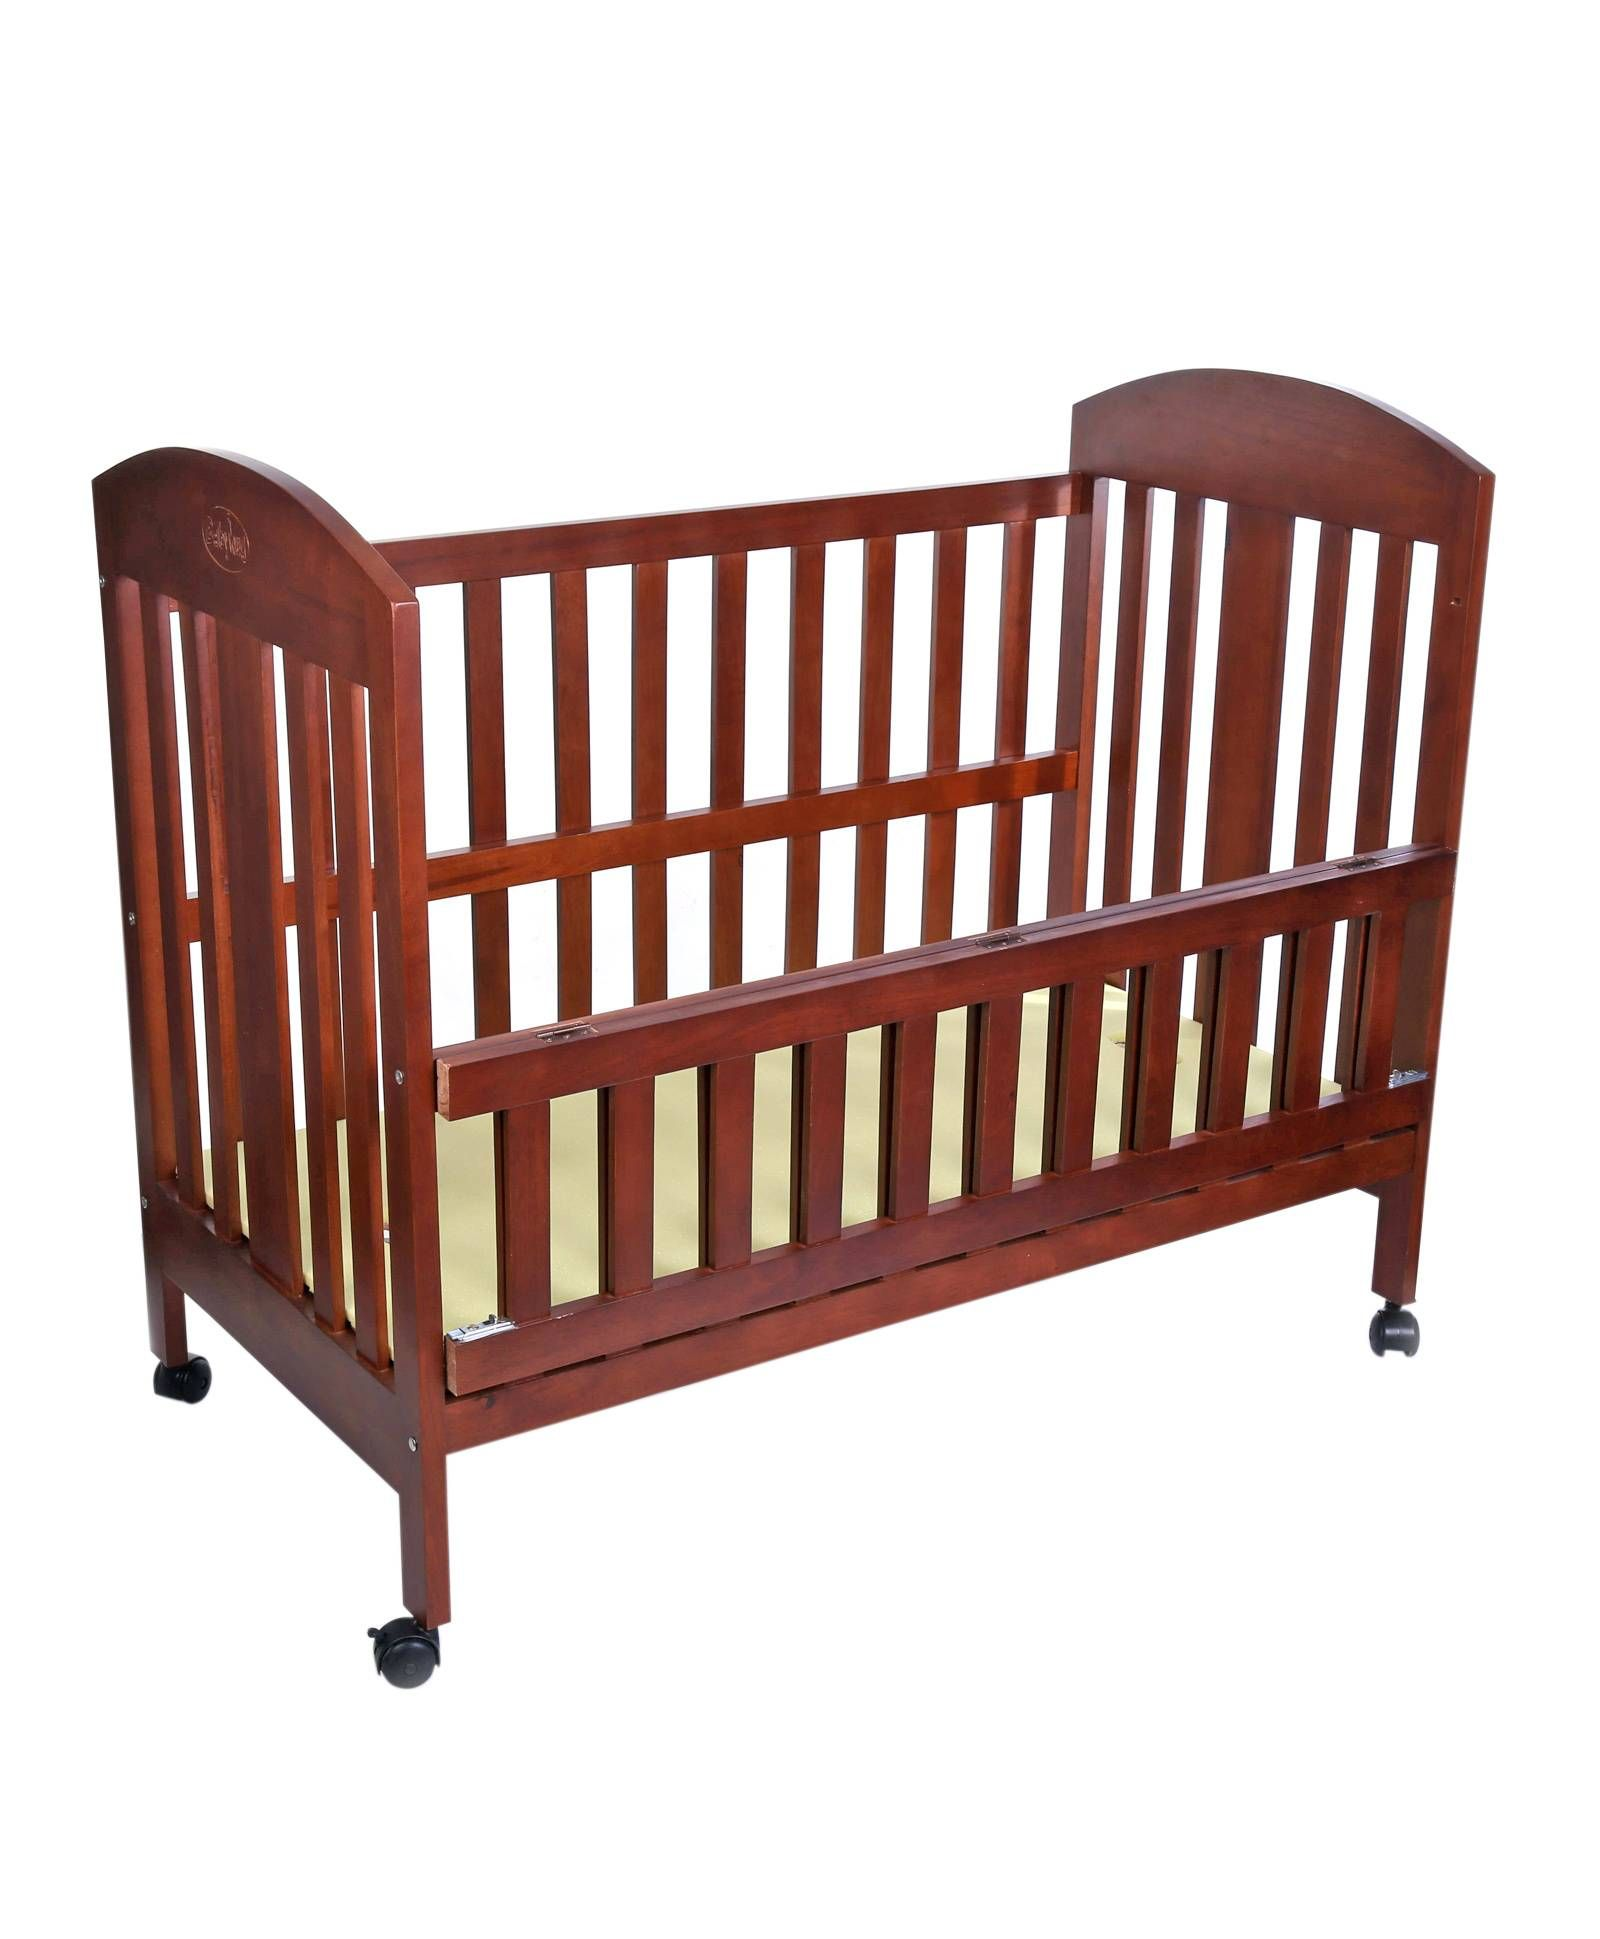 Firstcry cradle baby furniture shop shopping expert variety